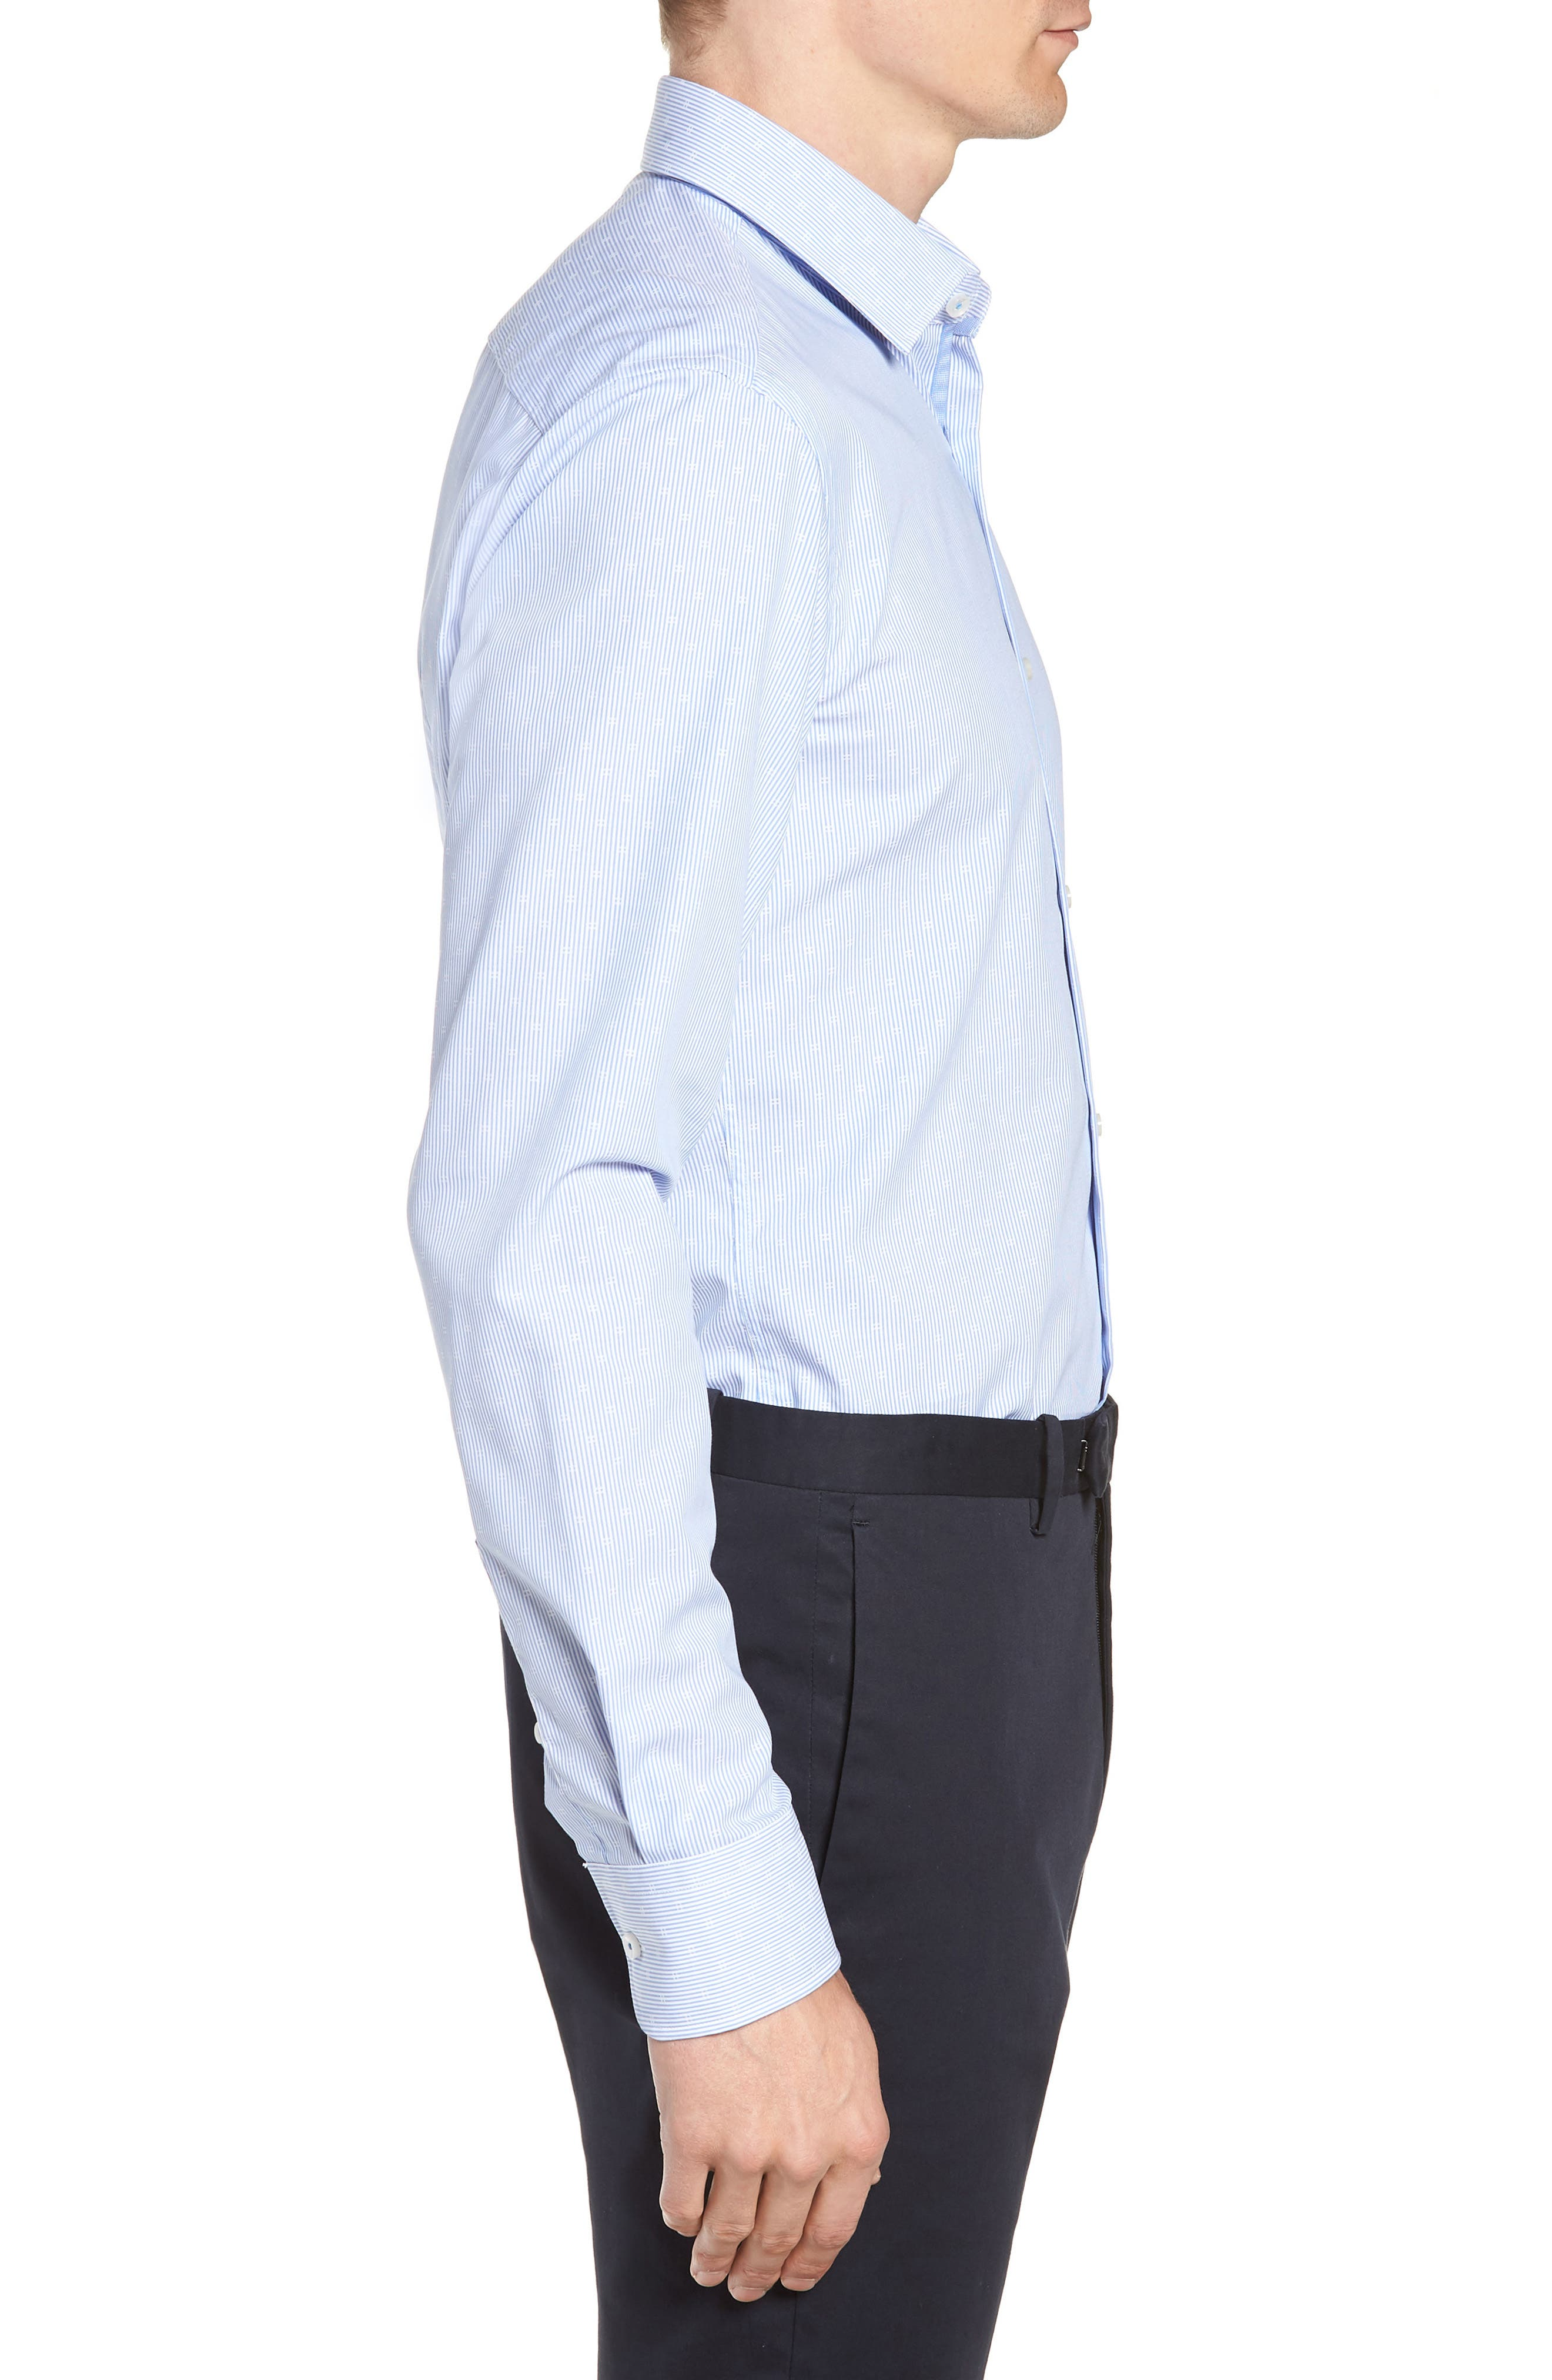 Jesse Slim Fit Stripe Dress Shirt,                             Alternate thumbnail 4, color,                             BLUE